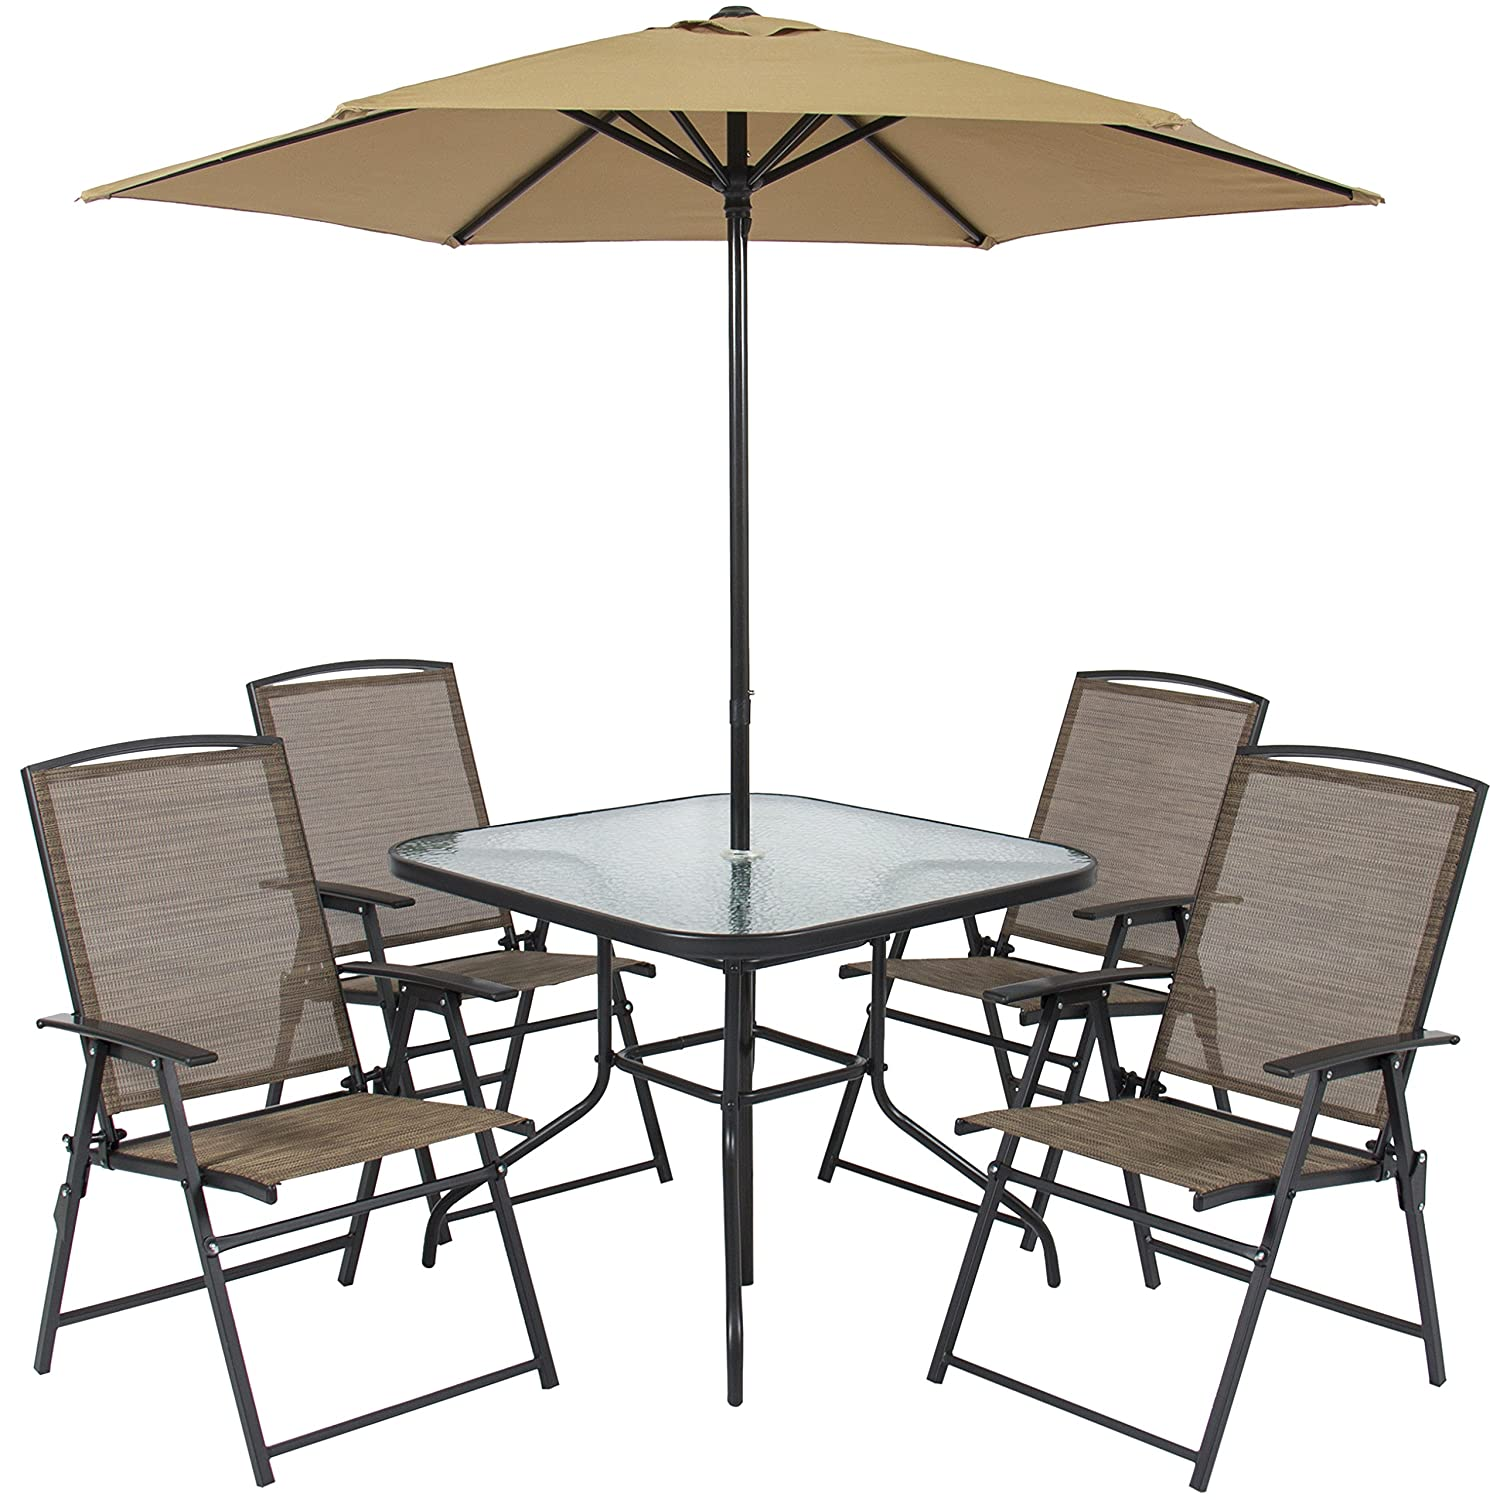 amazoncom best choice products 6pc outdoor folding patio dining set w table 4 chairs umbrella and built in base patio lawn garden